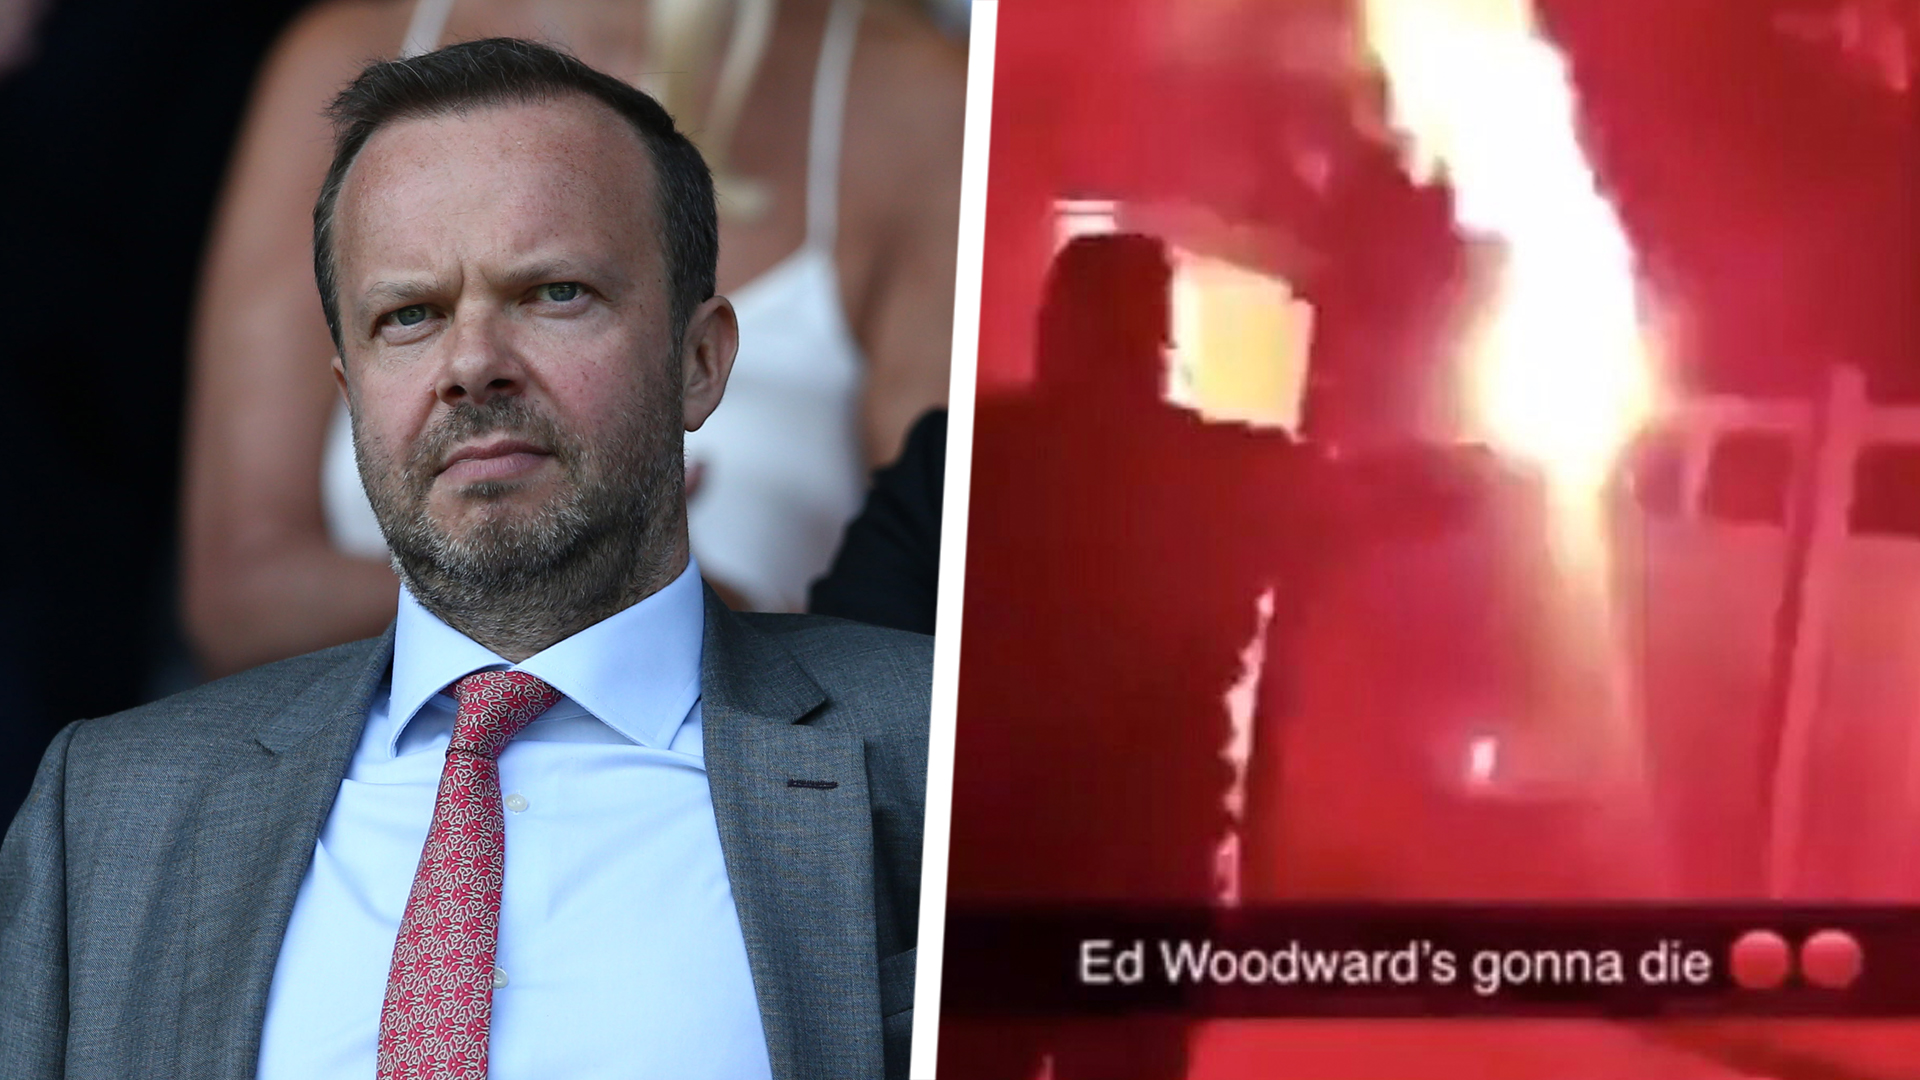 VIDEO: Man Utd fans attack Woodward's house with flares